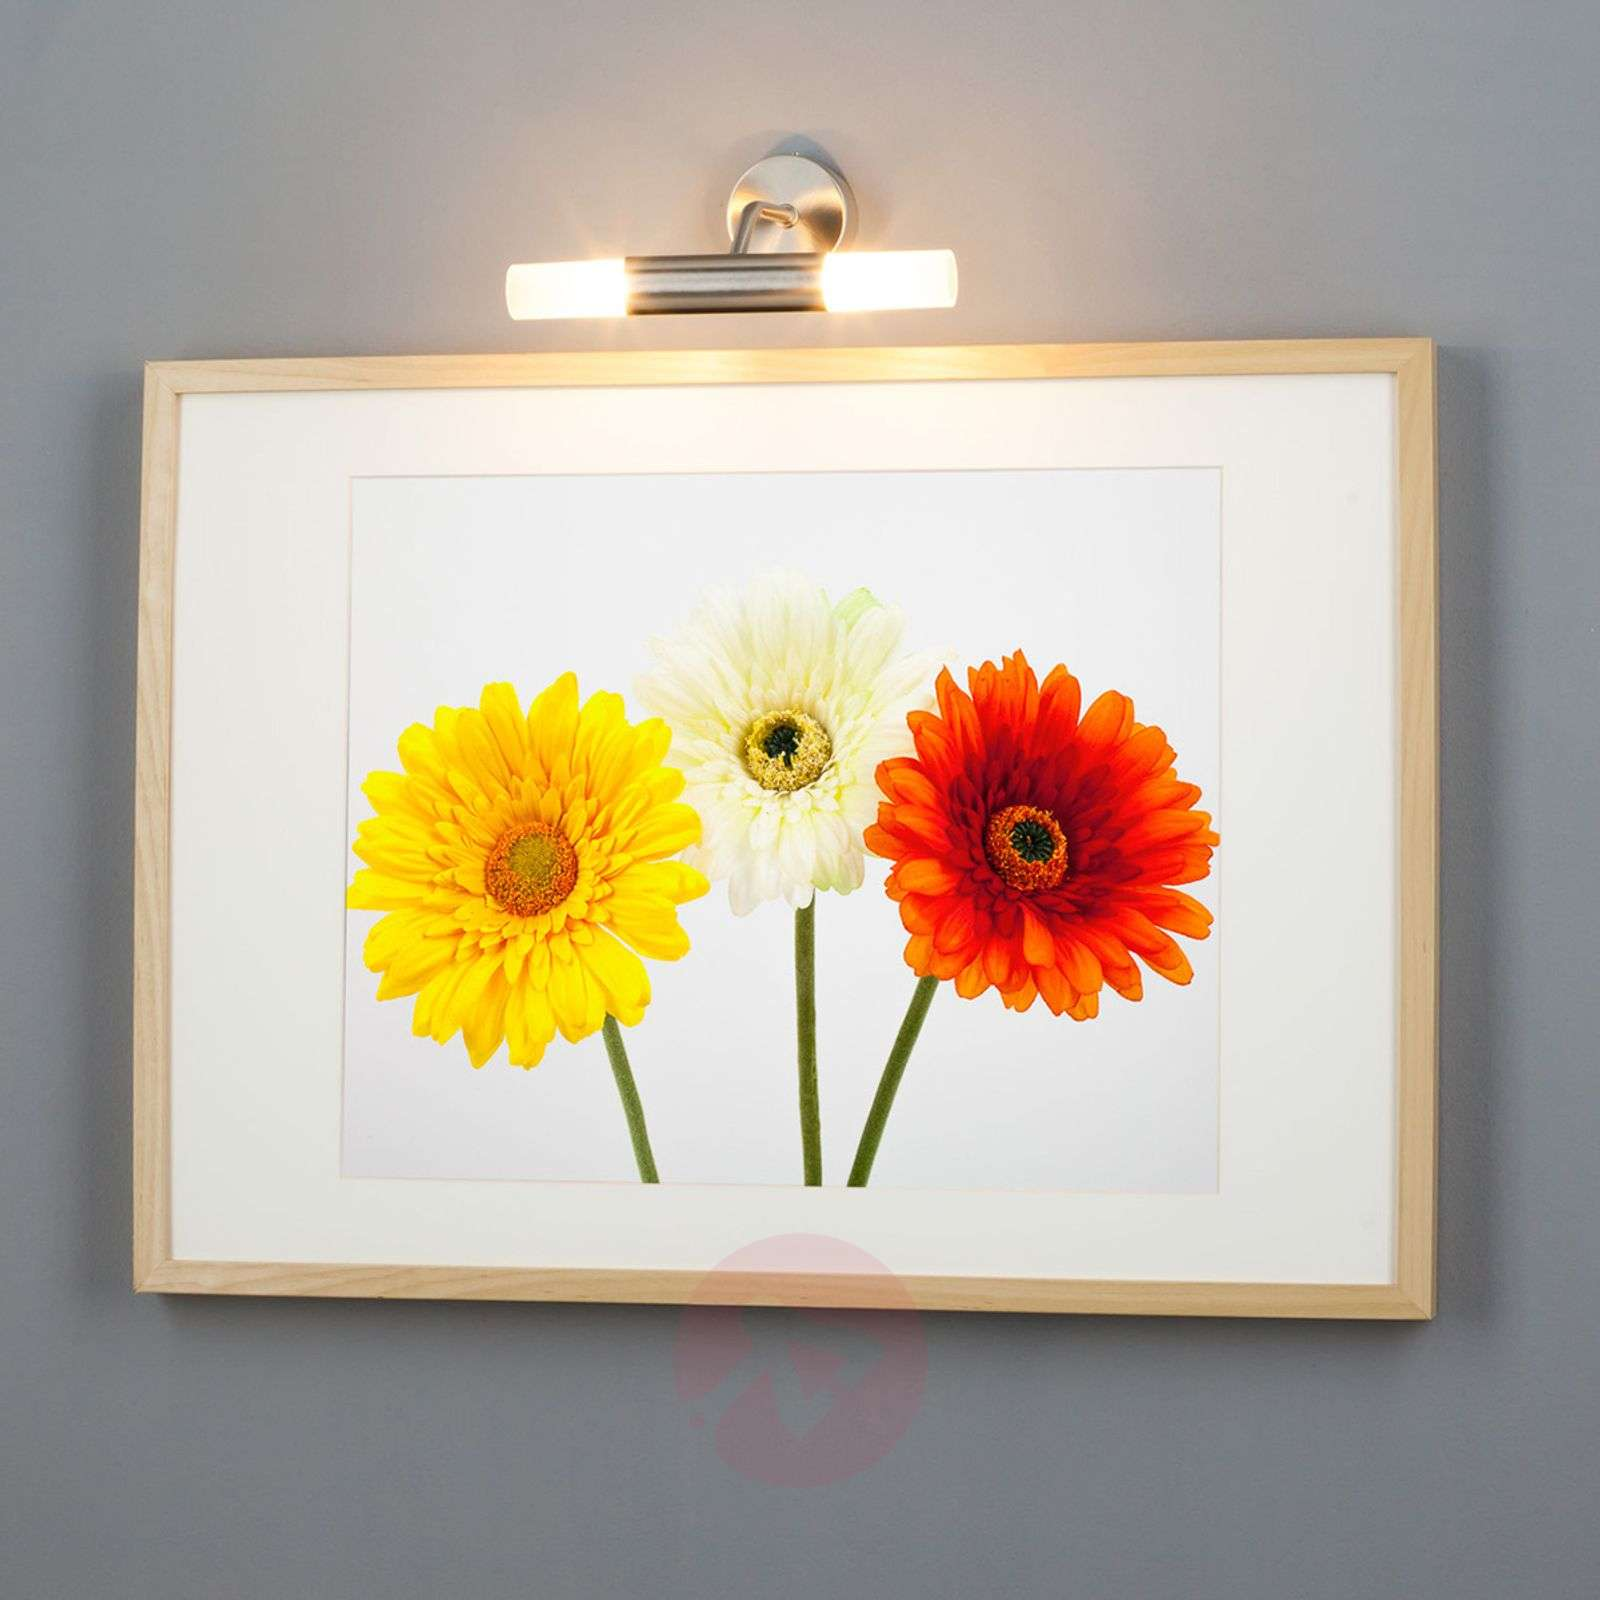 Wall lamp Viviane for mirrors and pictures-9970023-01